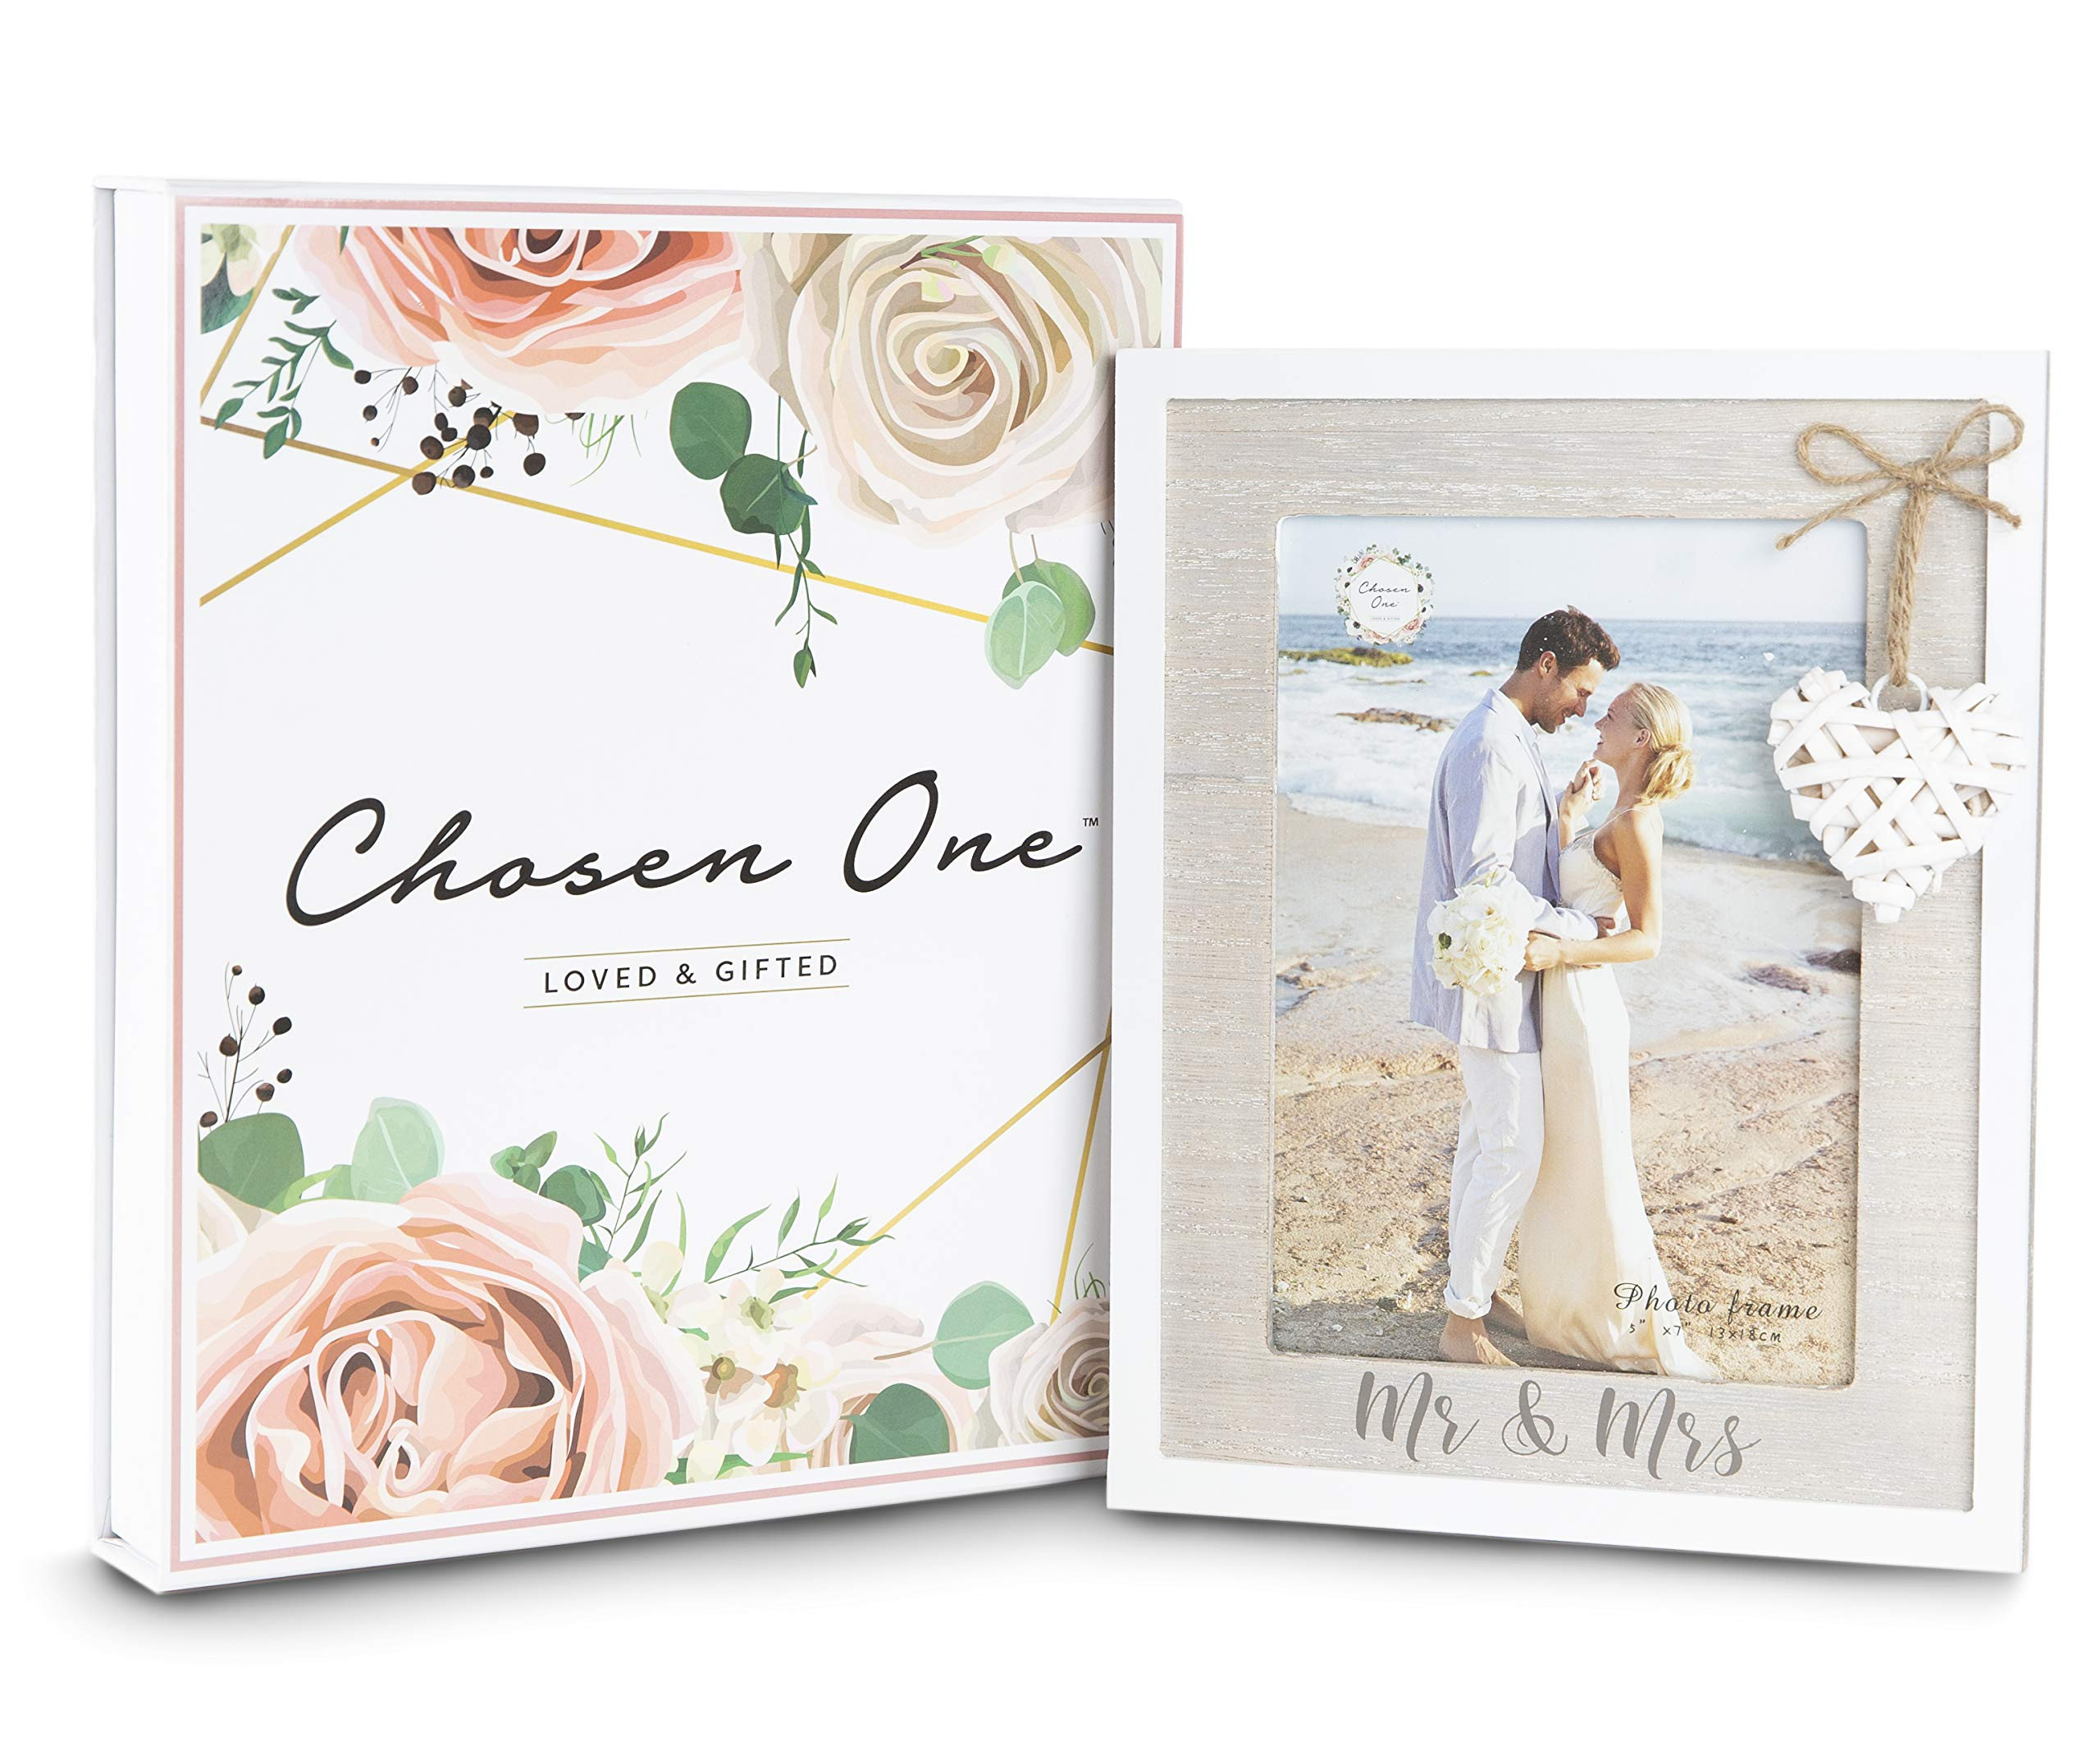 Mr & Mrs 5x7 Picture Frame by Chosen One - Rustic White Picture Frames with Heart Accent - Bridal Shower Gifts, Engagement Frame and Wedding Gifts for The Couple - Beach Style Wooden Picture Frame by Chosen One Loved & Gifted